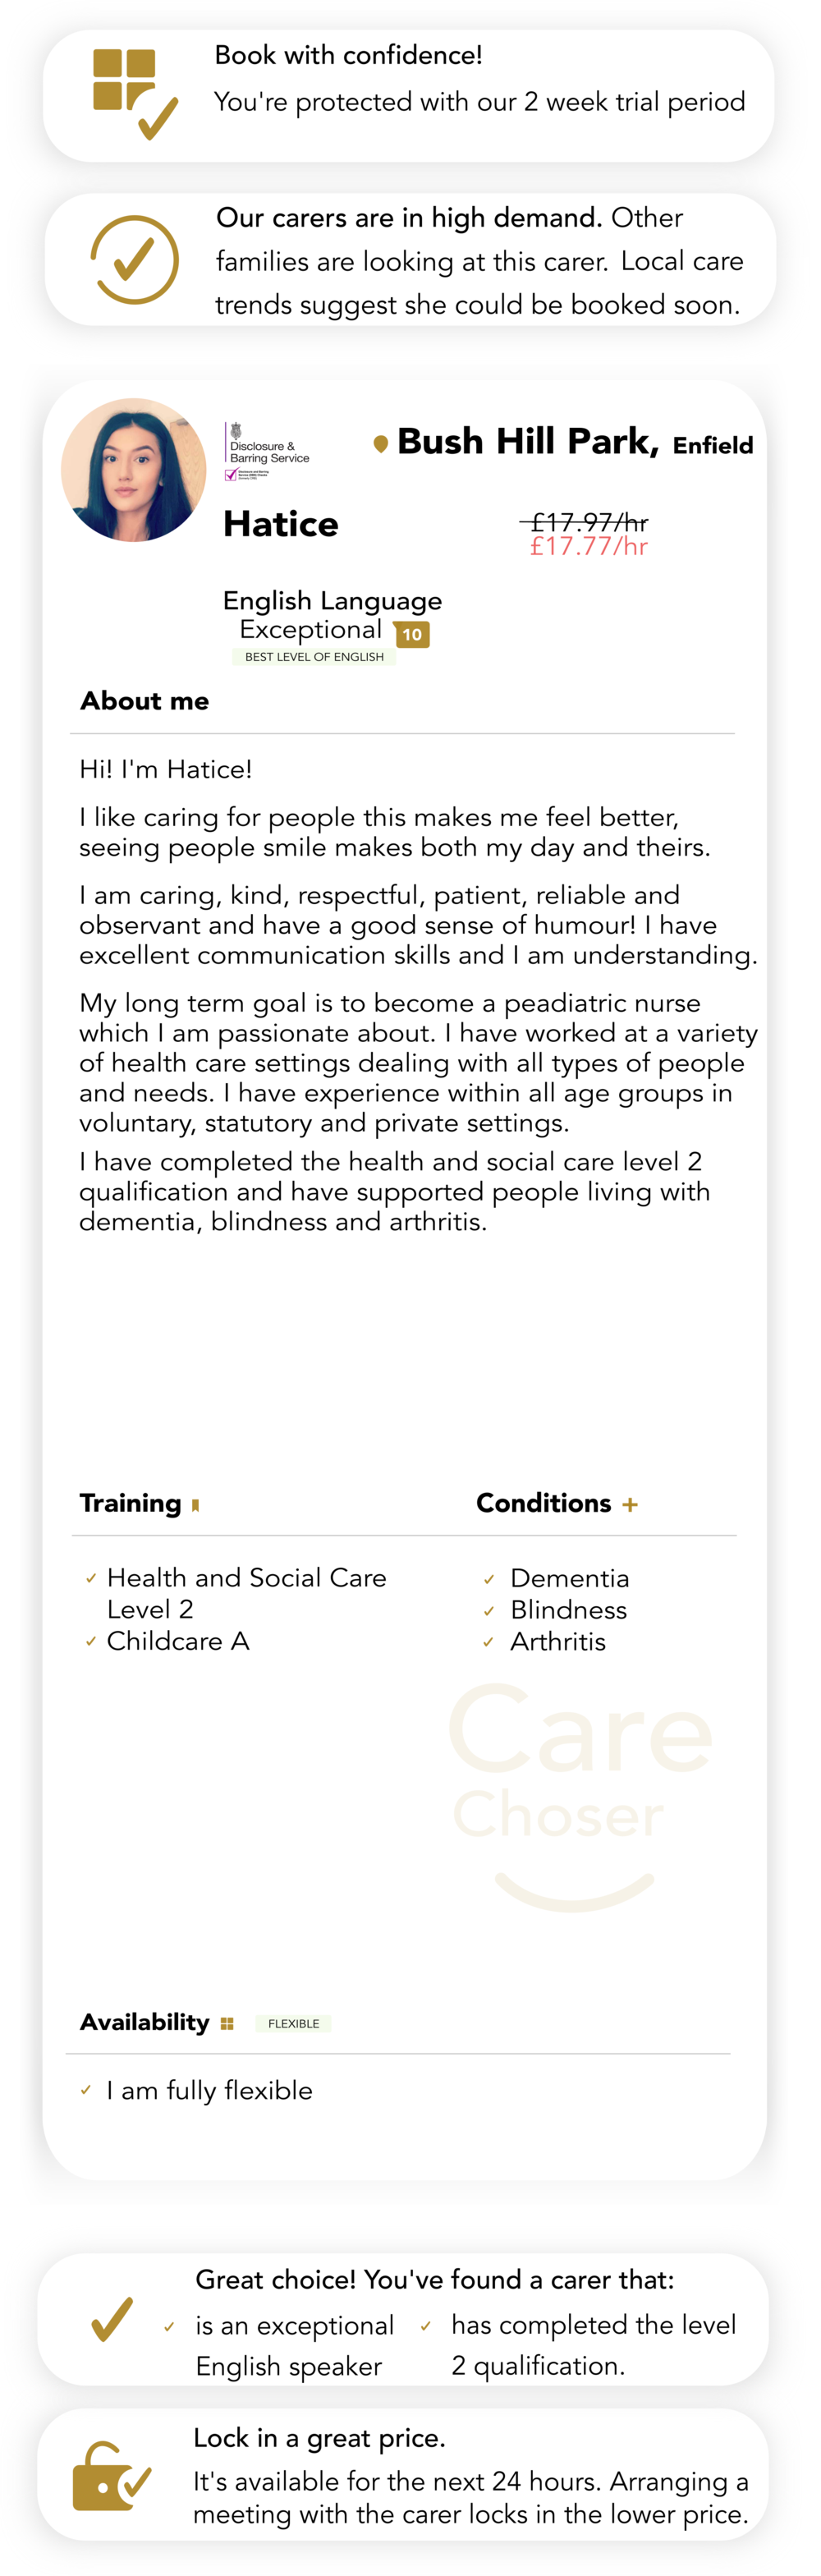 Hatice - home care in Enfield, Bush Hill Park.png